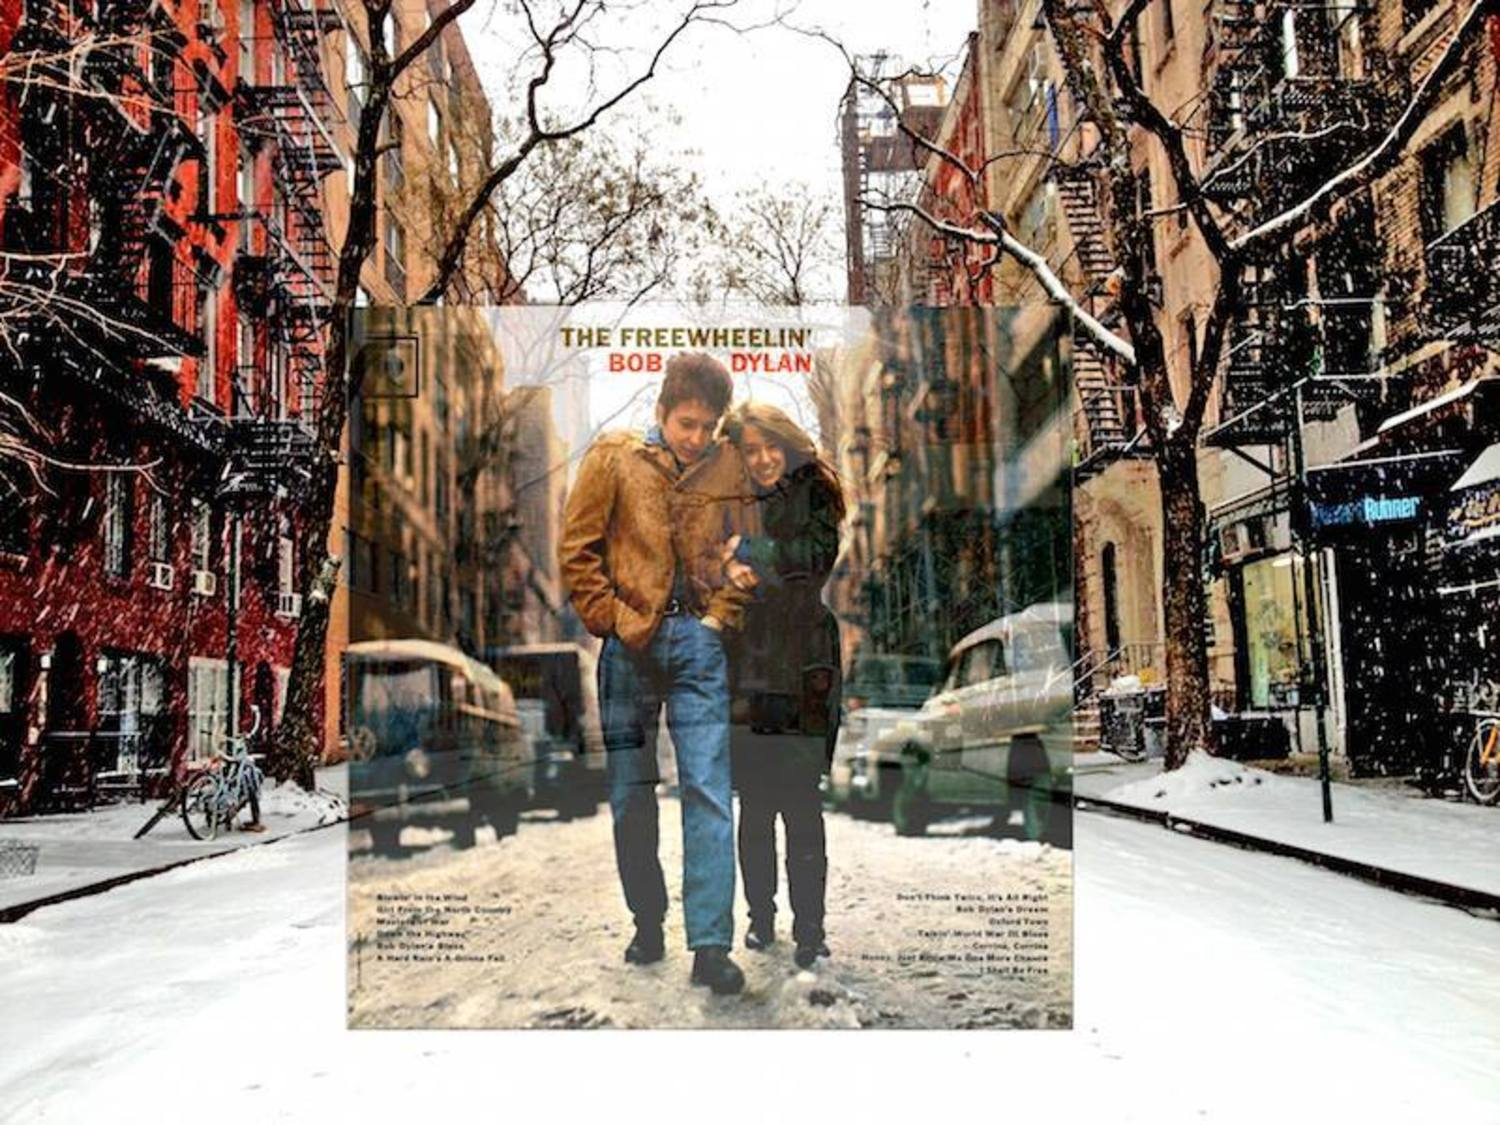 "FREEWHEELIN' - BOB DYLAN (1963, Columbia). . .Location: Outside 5 Jones Street near the intersection of West 4th Street, Greenwich Village, New York. . .Photo by Don Hunstein. . .After 2 hours of an indoor photoshoot at Dylan's apartment around the corner at 161 West 4th Street, Hunstein suggested they take some shots outside before the sun went down.. . .Dylan wore a thin suede jacket and his girlfriend Suze Rotolo wore a green Loden coat she had bought in Italy. . .Hunstein  told then to ""Walk away from me, then turn around and walk toward the camera,"" which they did several times. From his one roll of film of them walking through the slushy street, Columbia chose the now iconic cover."